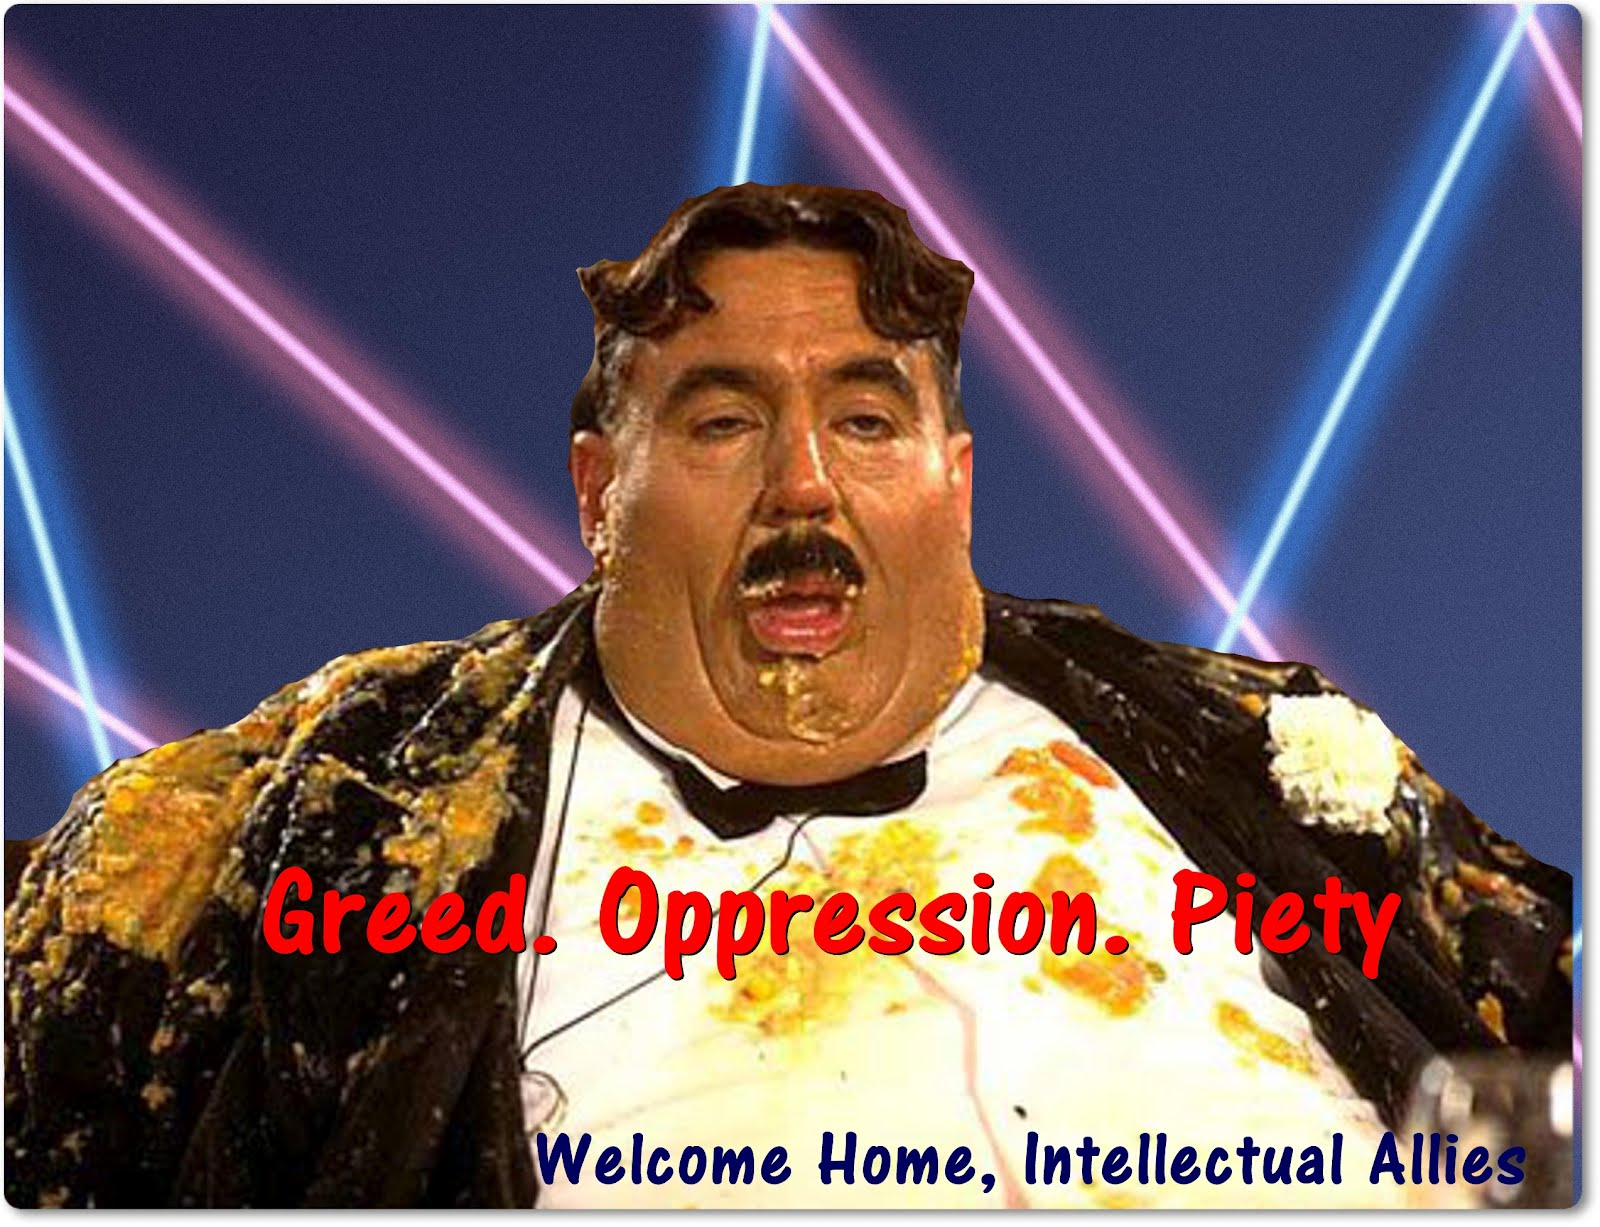 GOP : Greed.Oppression.Piety